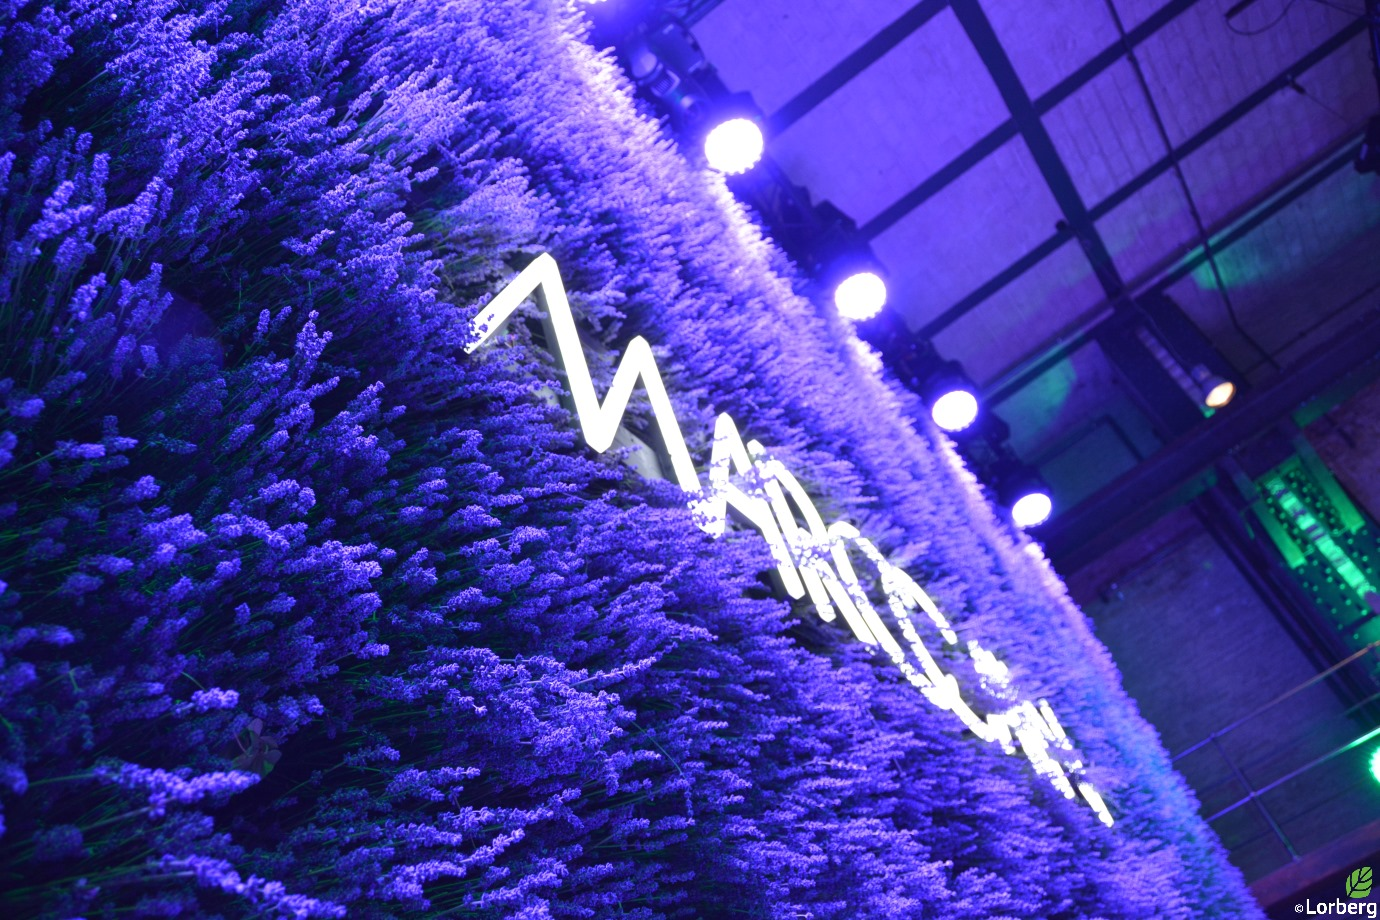 Rent-a-tree_FAshion Week_Marc Cain_Pflanzenverleih_Mietpflanzen_Lavendel_1